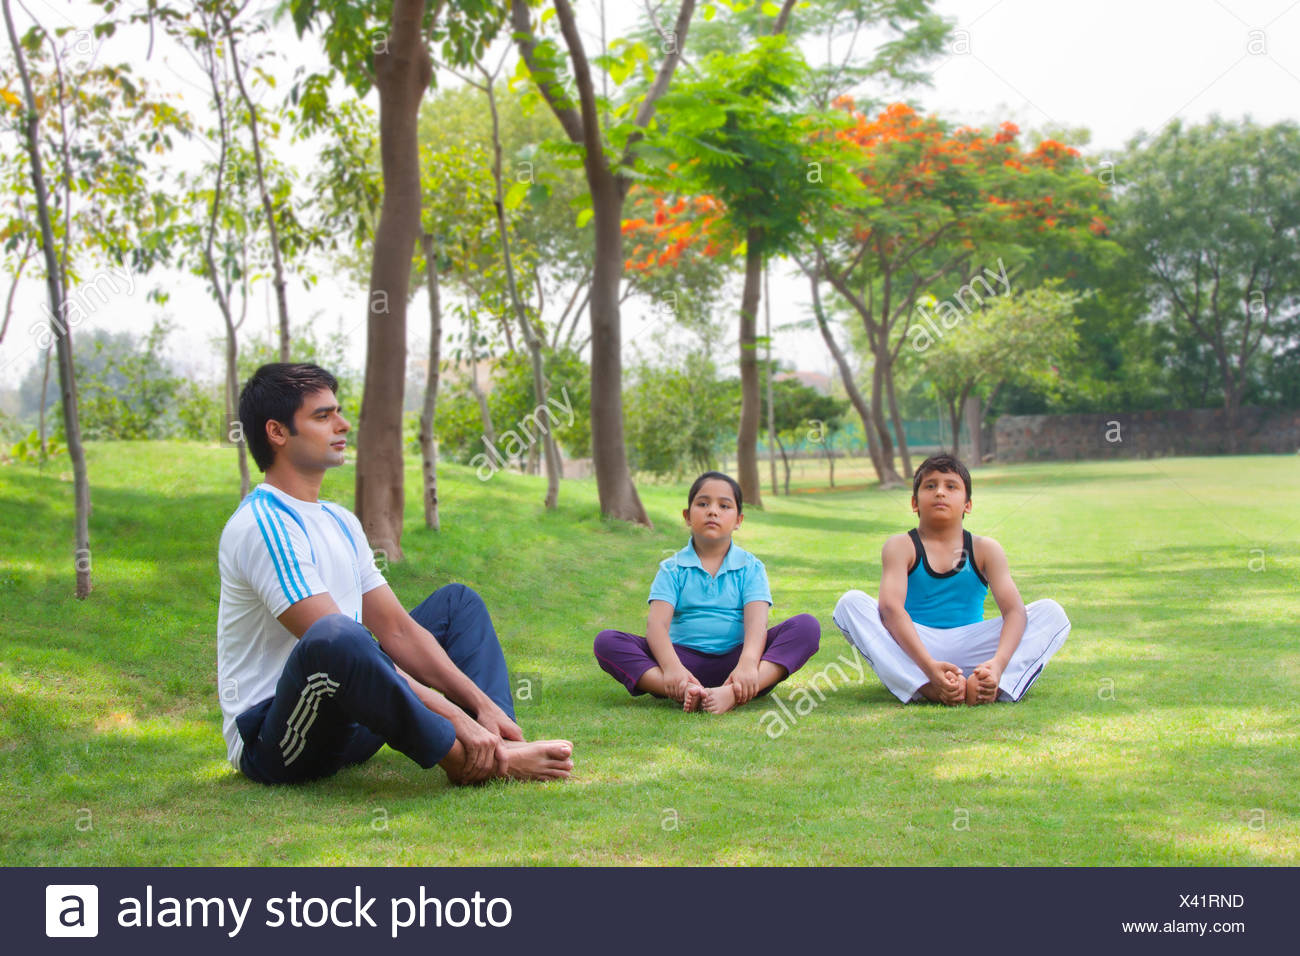 Family exercising in park - Stock Image